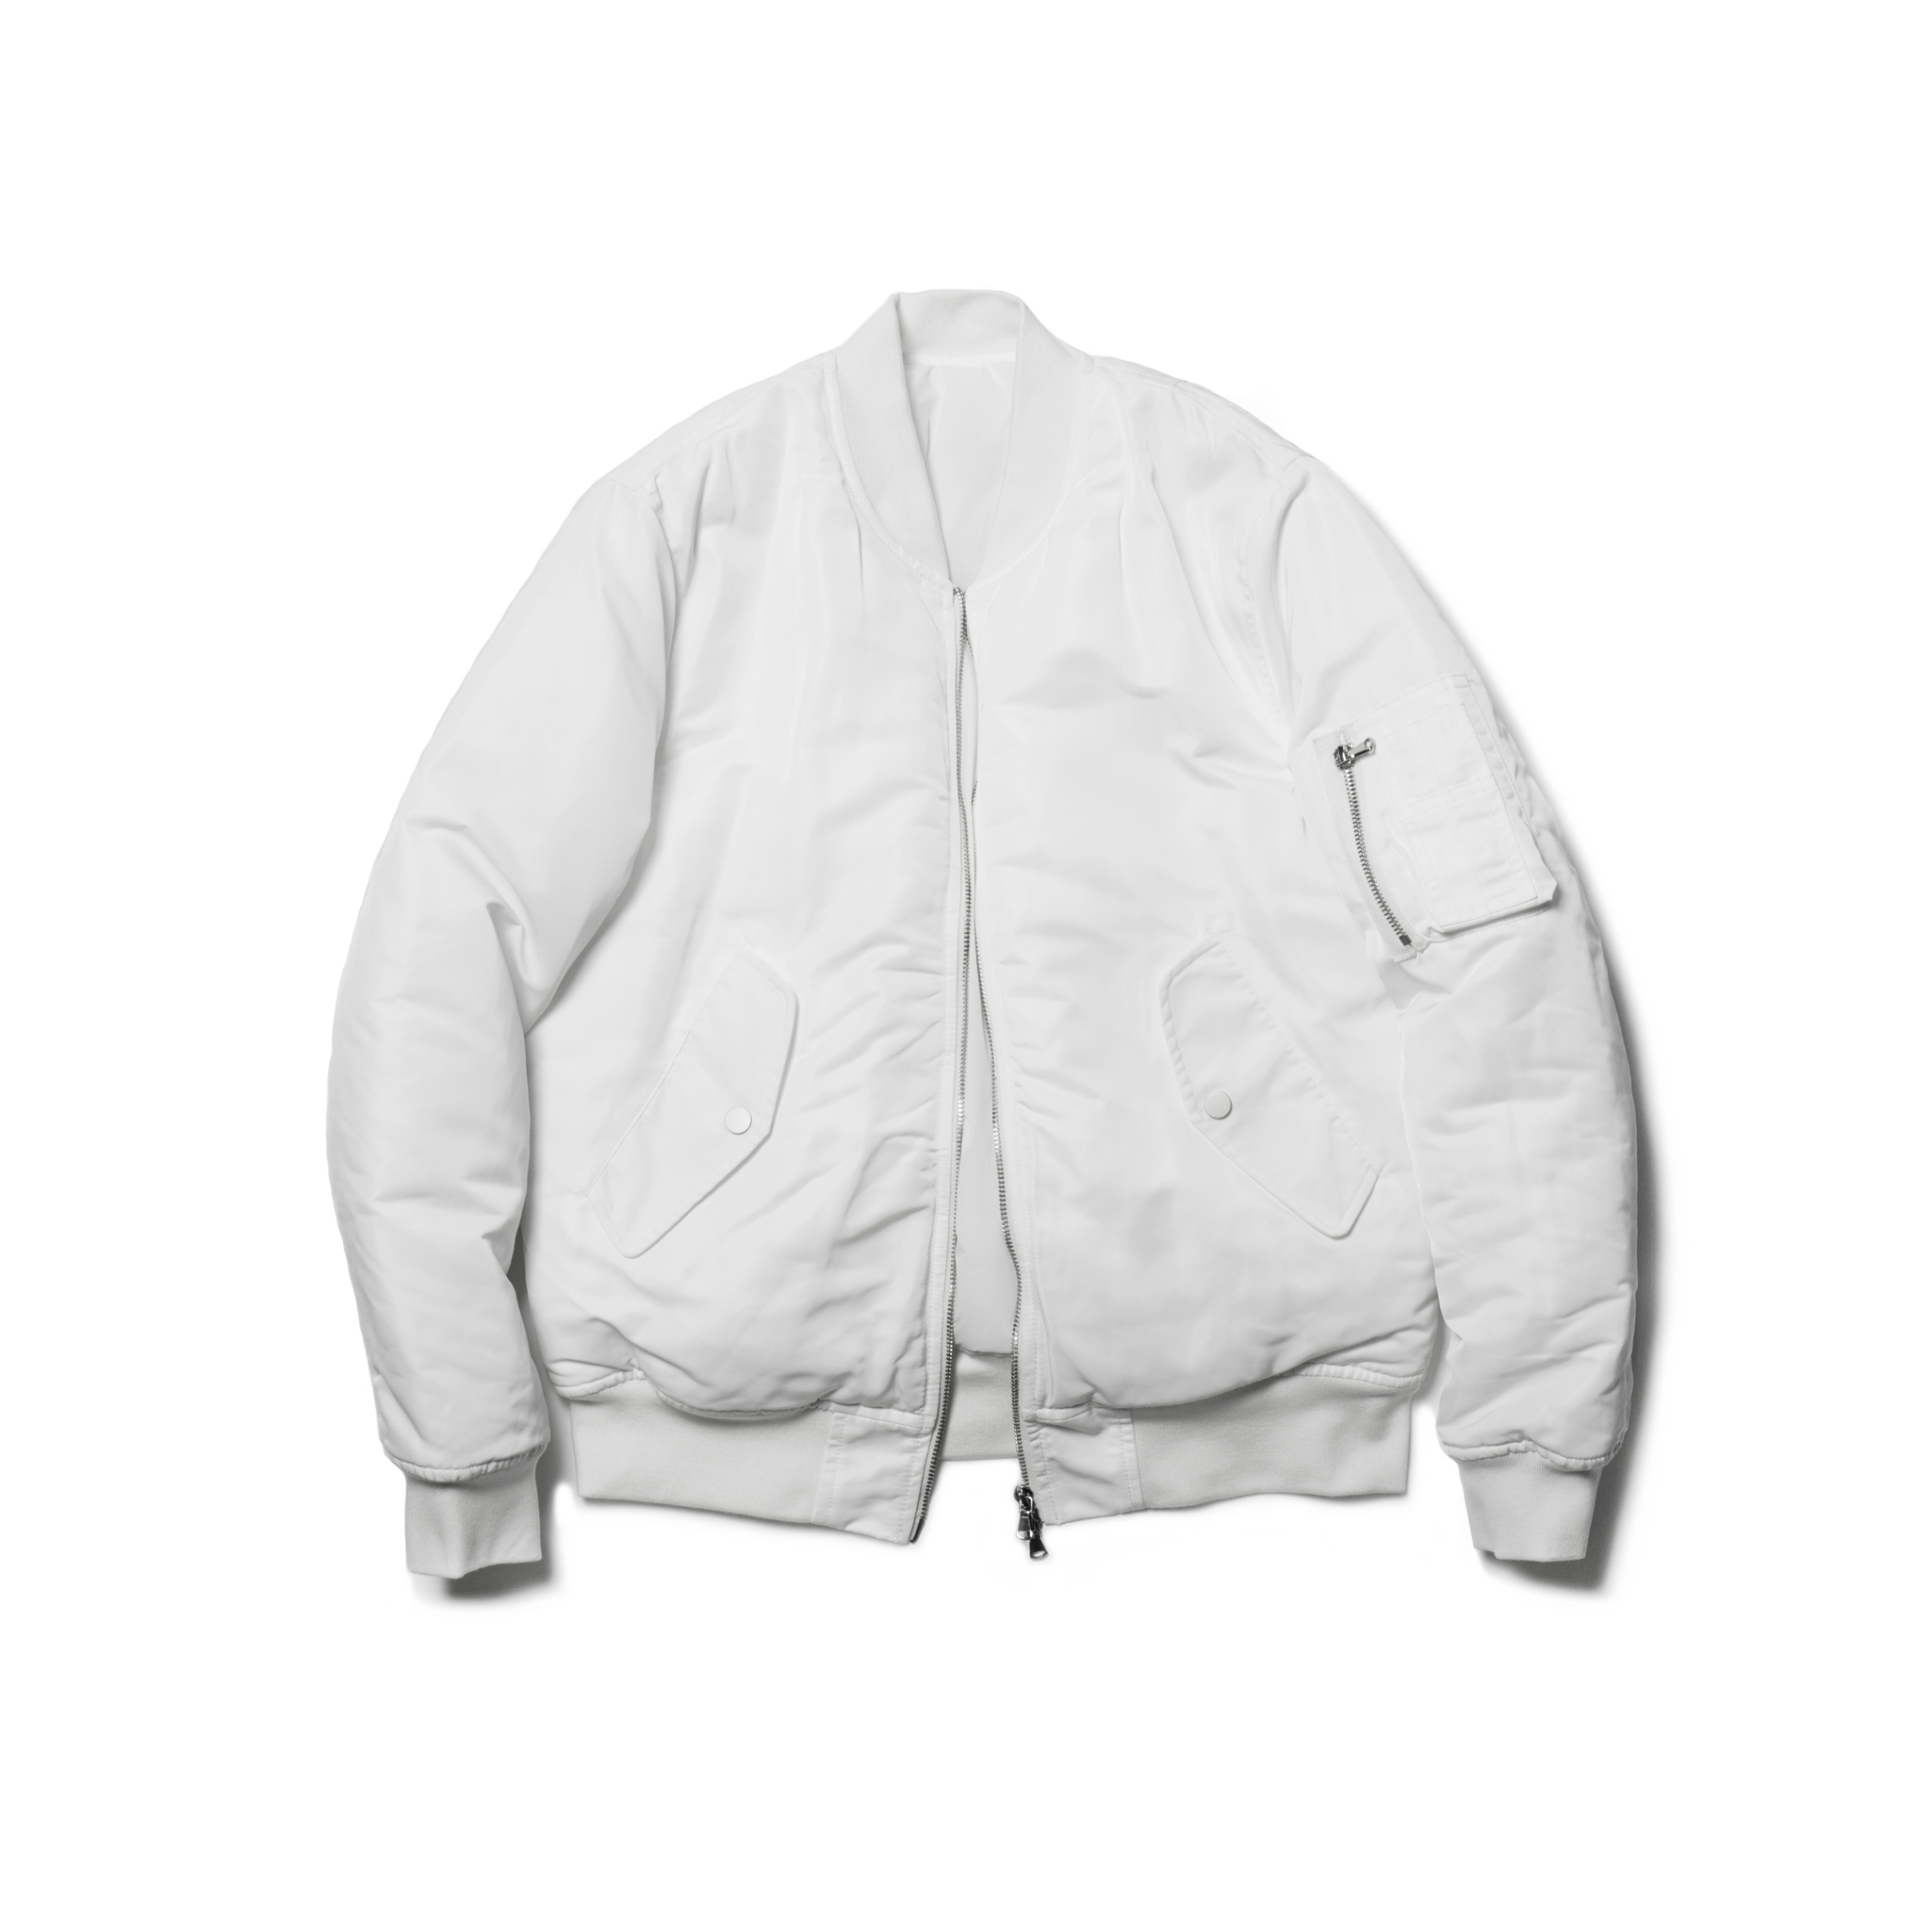 "Unawares FW16 ""UNAWARES HOMME"" MA-1 /White"